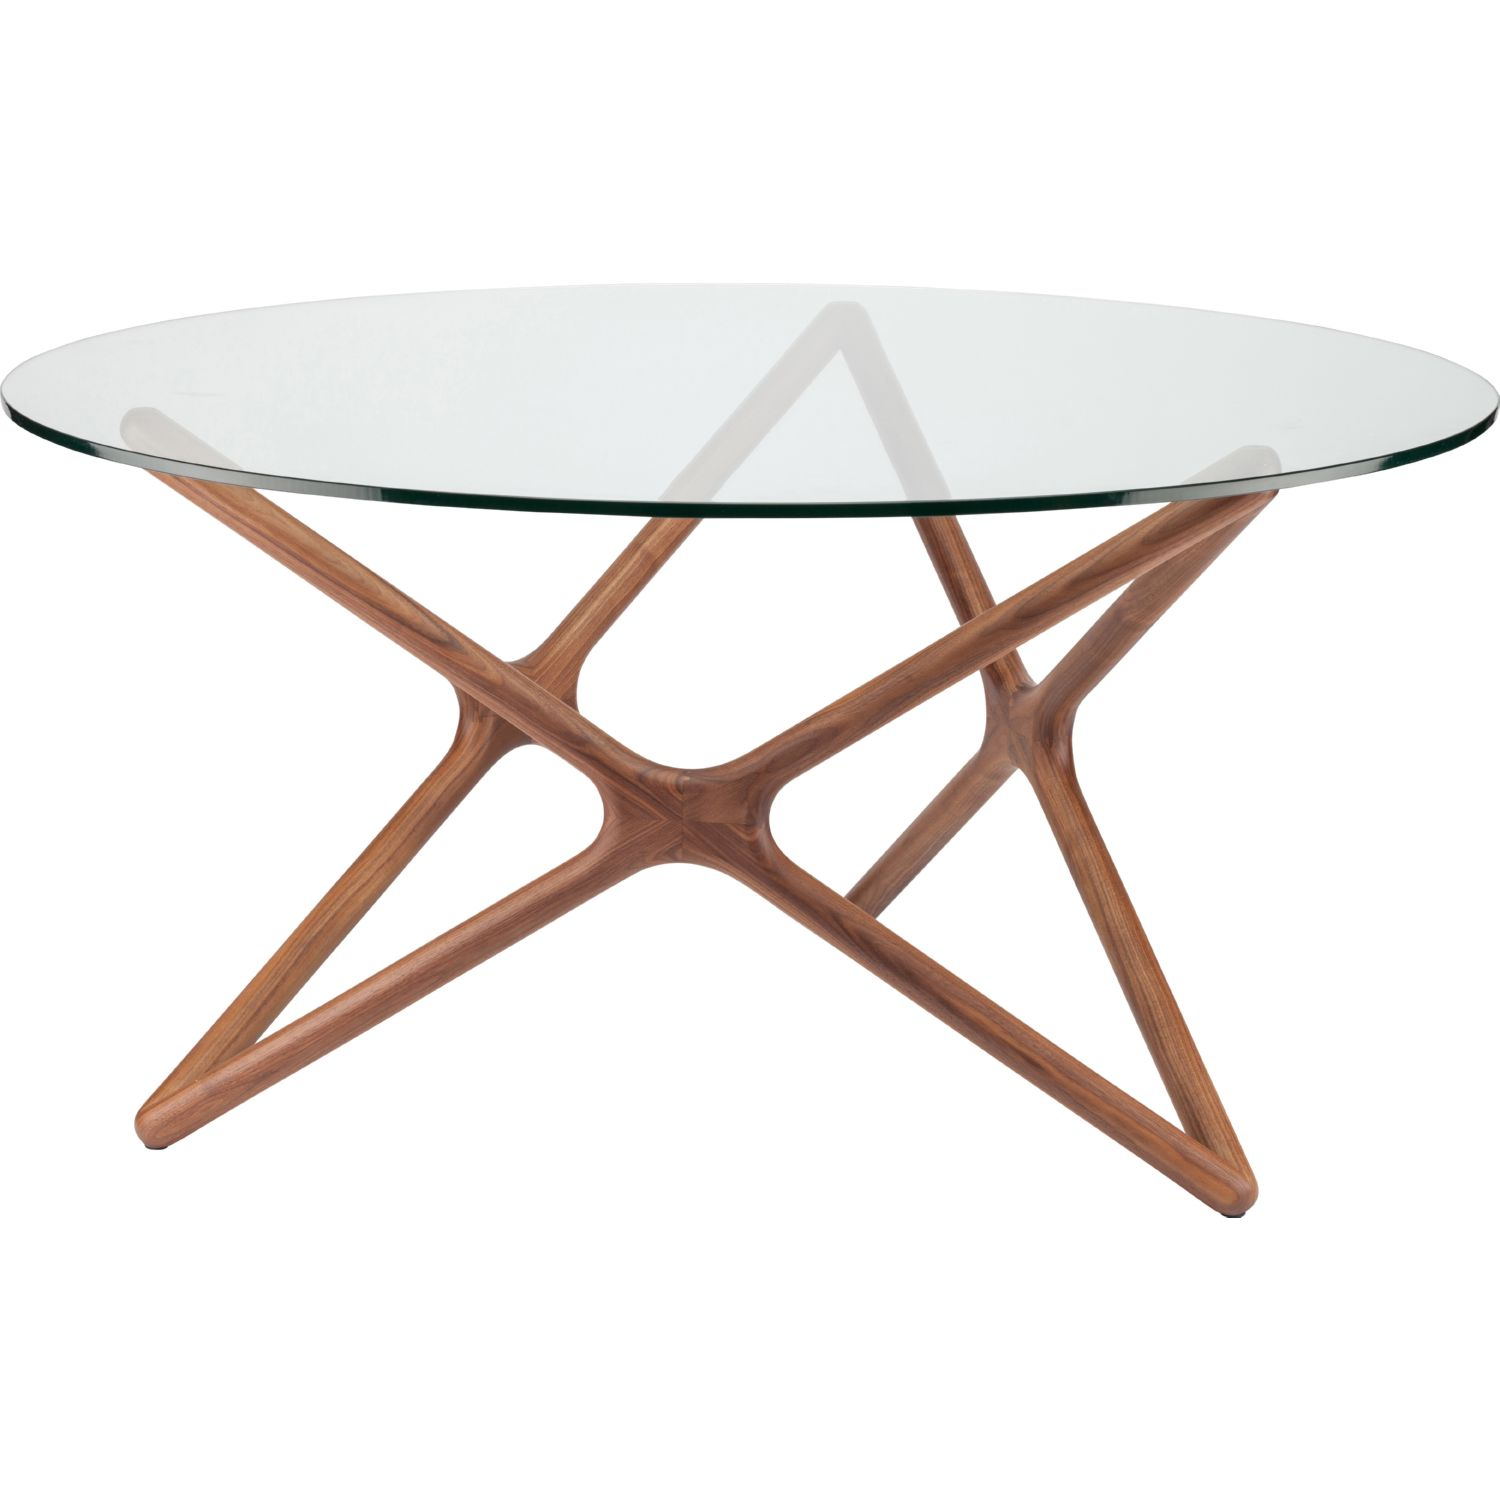 40 Dining Room Decorating Ideas You Need 25 In 2020 Dining Room Design Dining Room Table Centerpieces Modern Dining Room